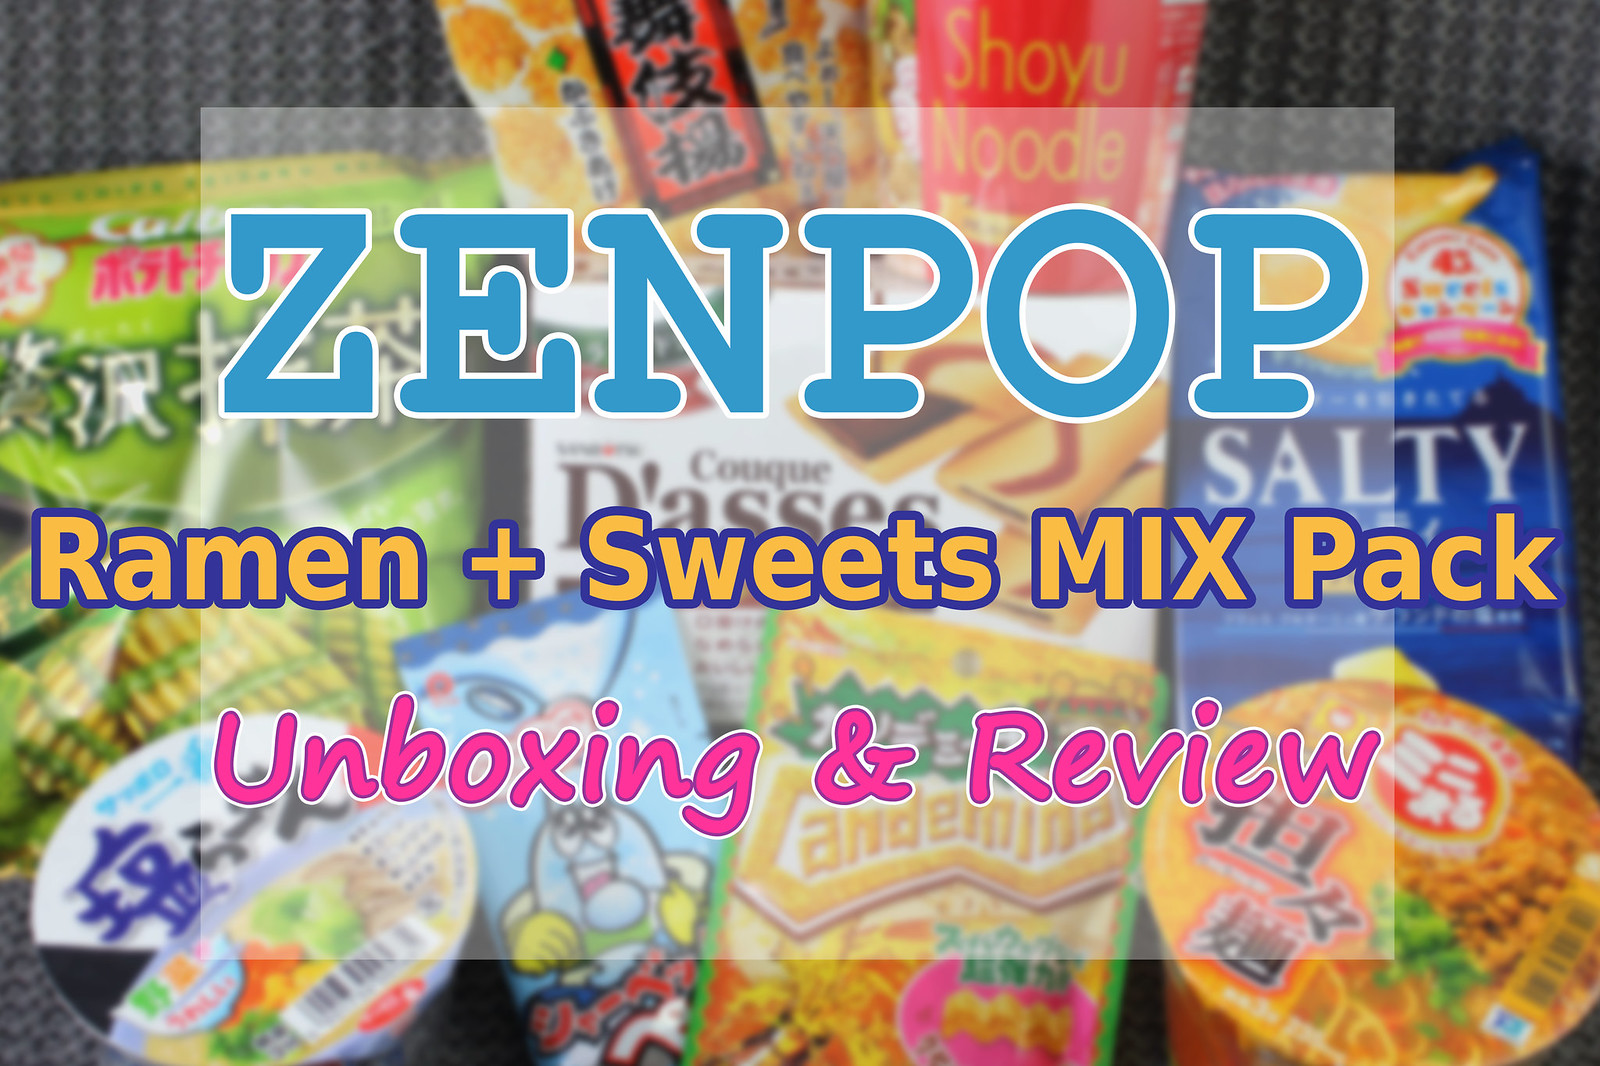 Zenpop Ramen + Sweets Mix Pack